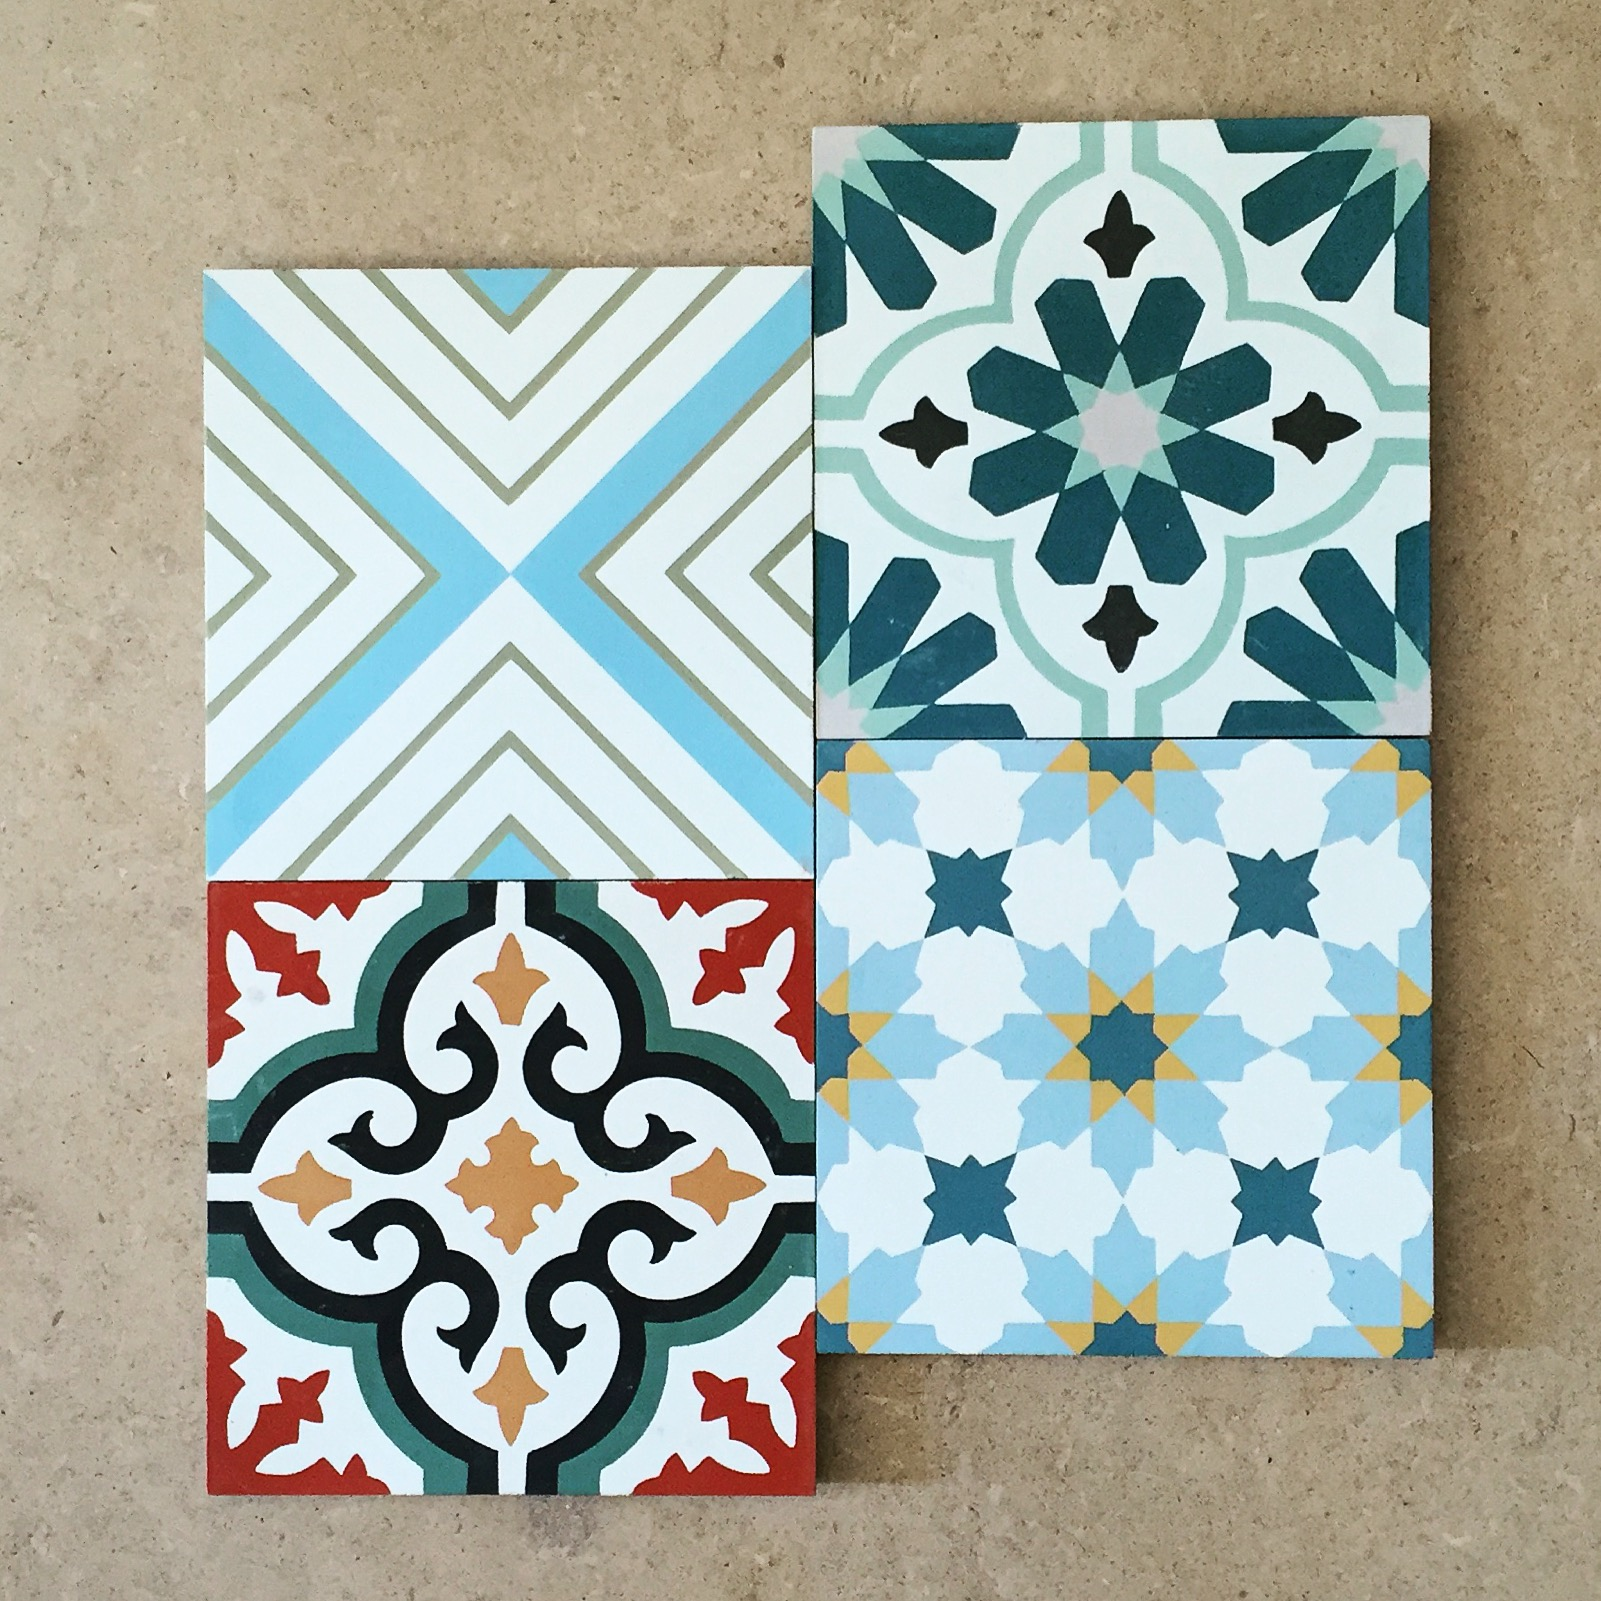 Encaustic tiles at burlanes Sevenoaks showroom